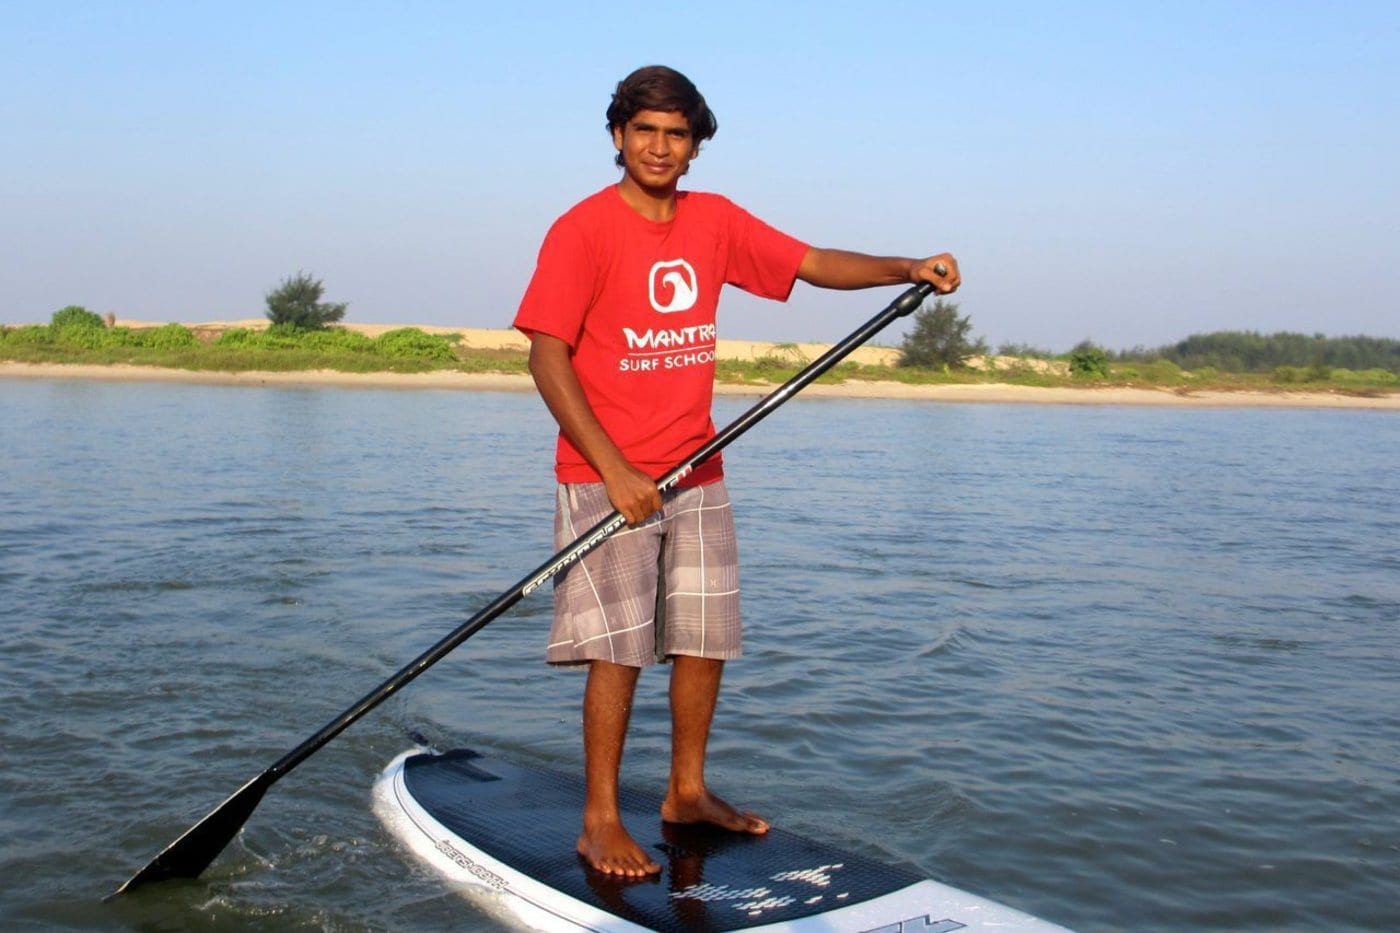 Stand Up Paddle in the river nearby.© Mantra Surf Club